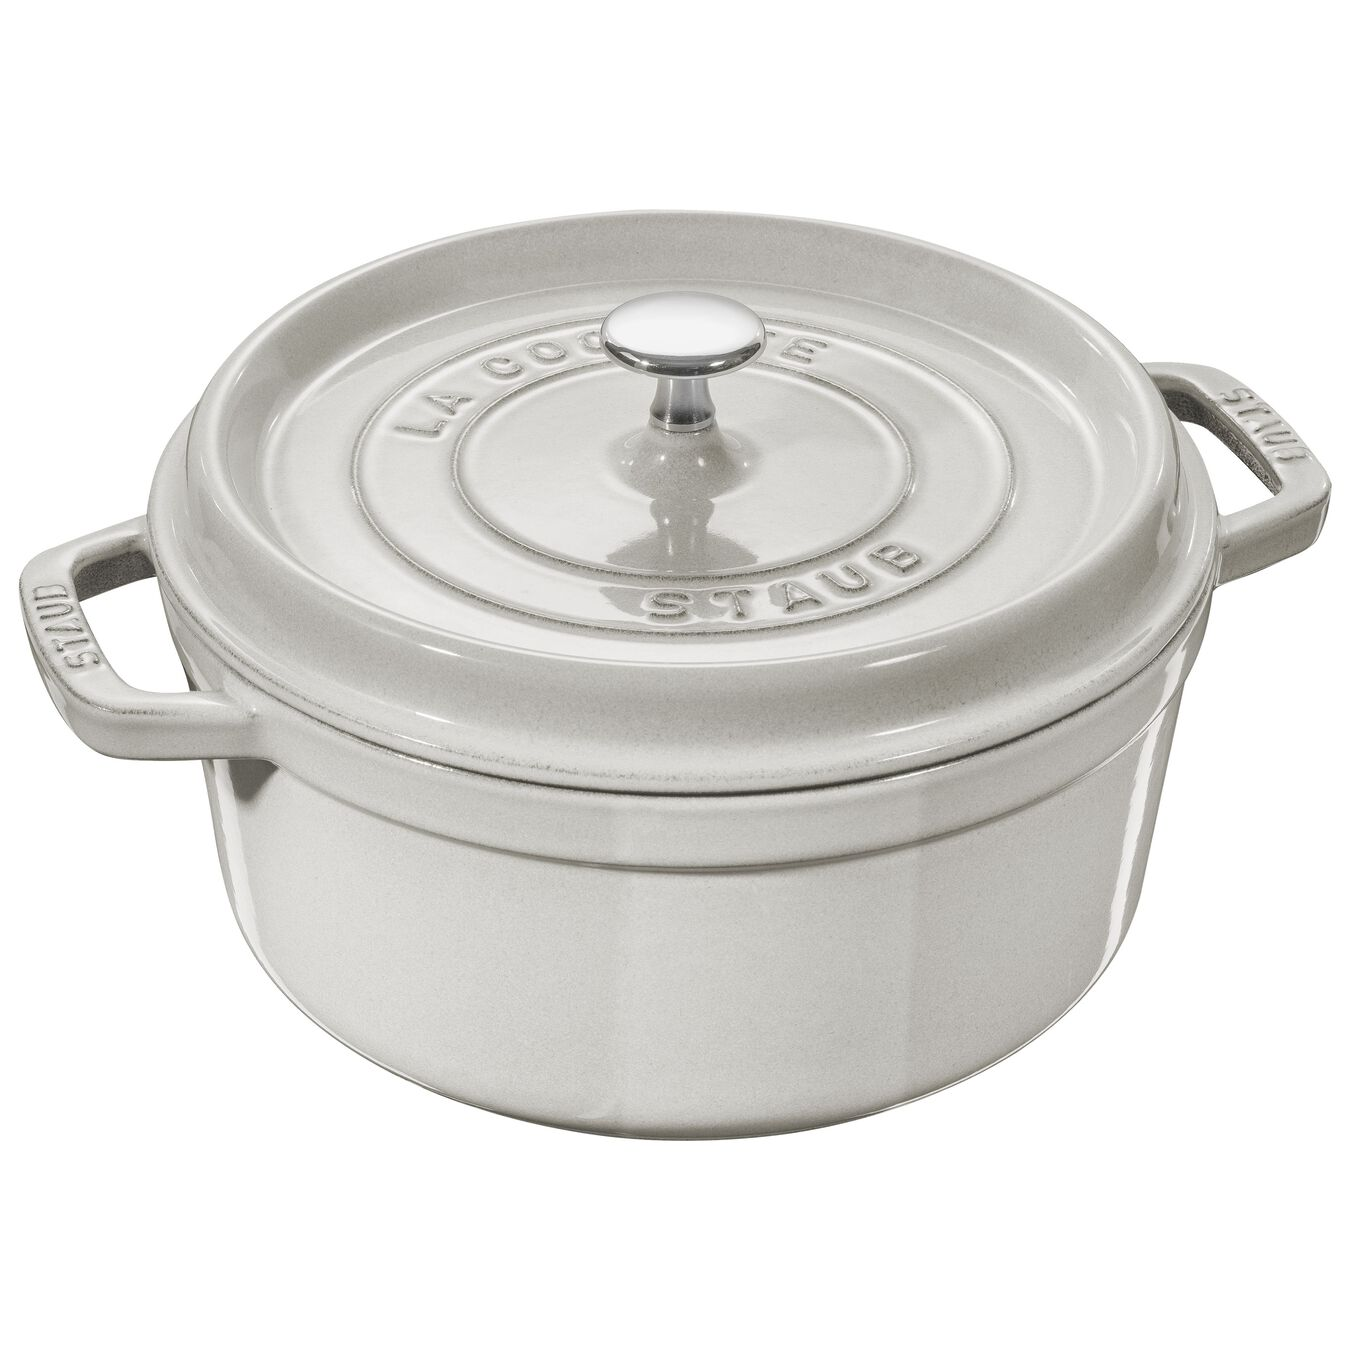 6.75 l Cast iron round Cocotte, White Truffle,,large 1